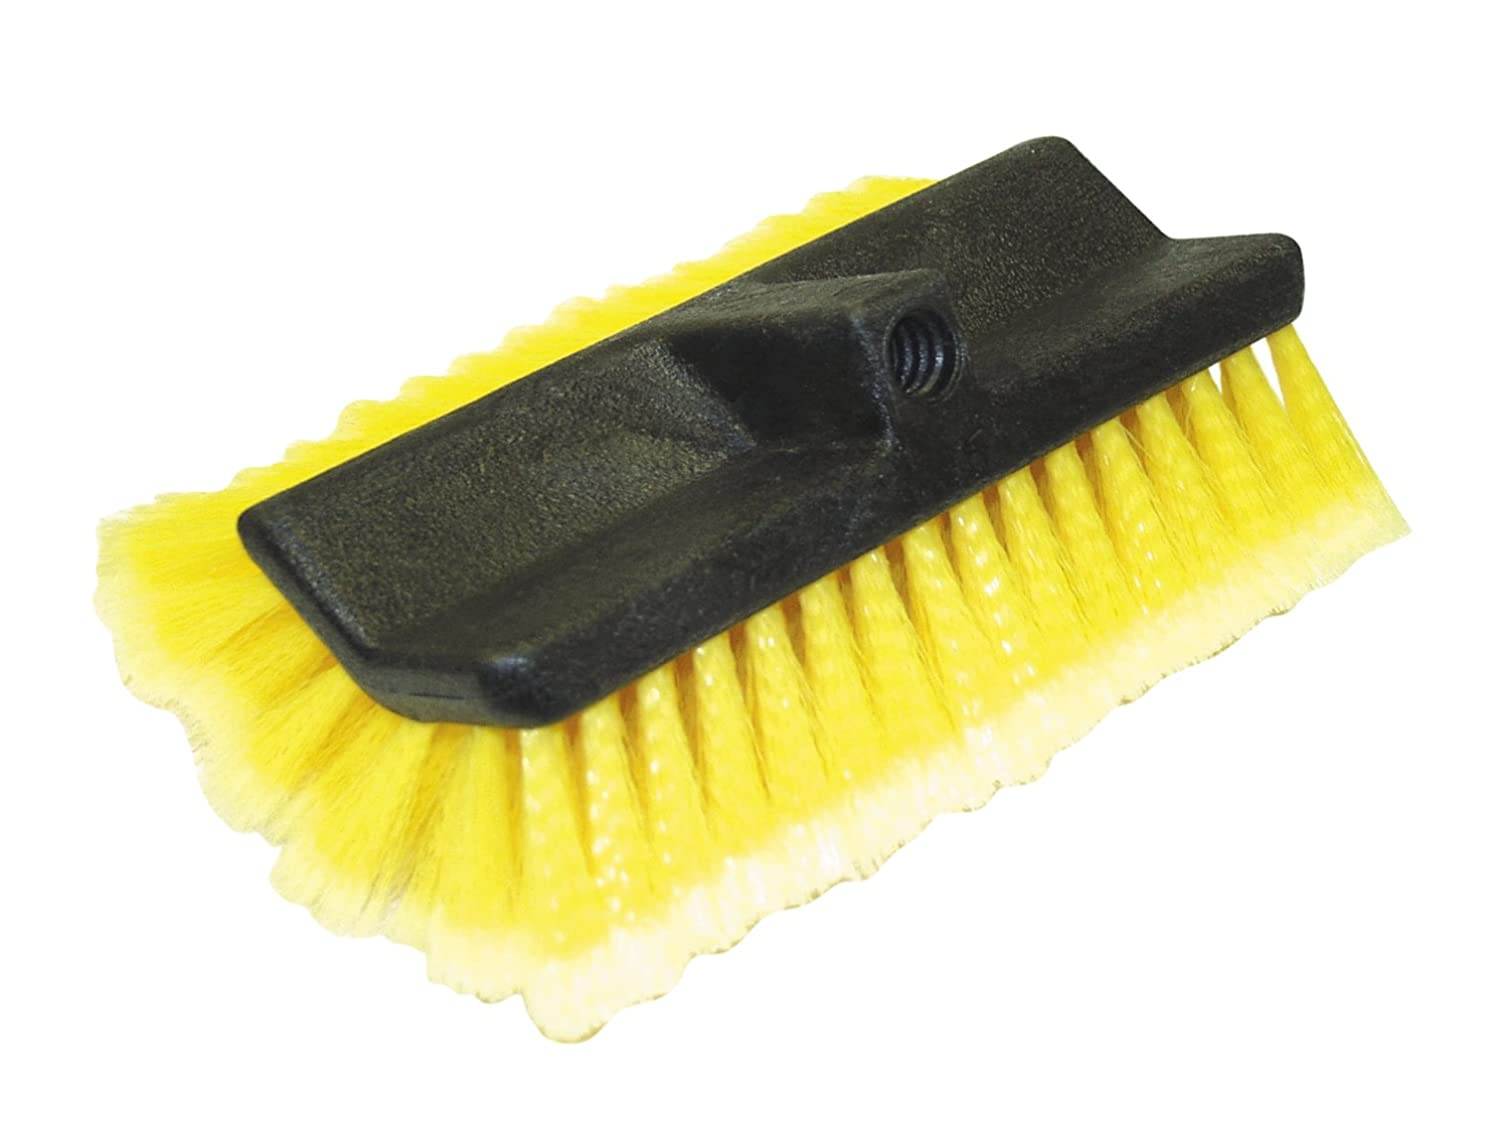 Carrand 93086 10' Replacement Bi Level Heavy Duty Wash Brush with Flow-Thru Handle